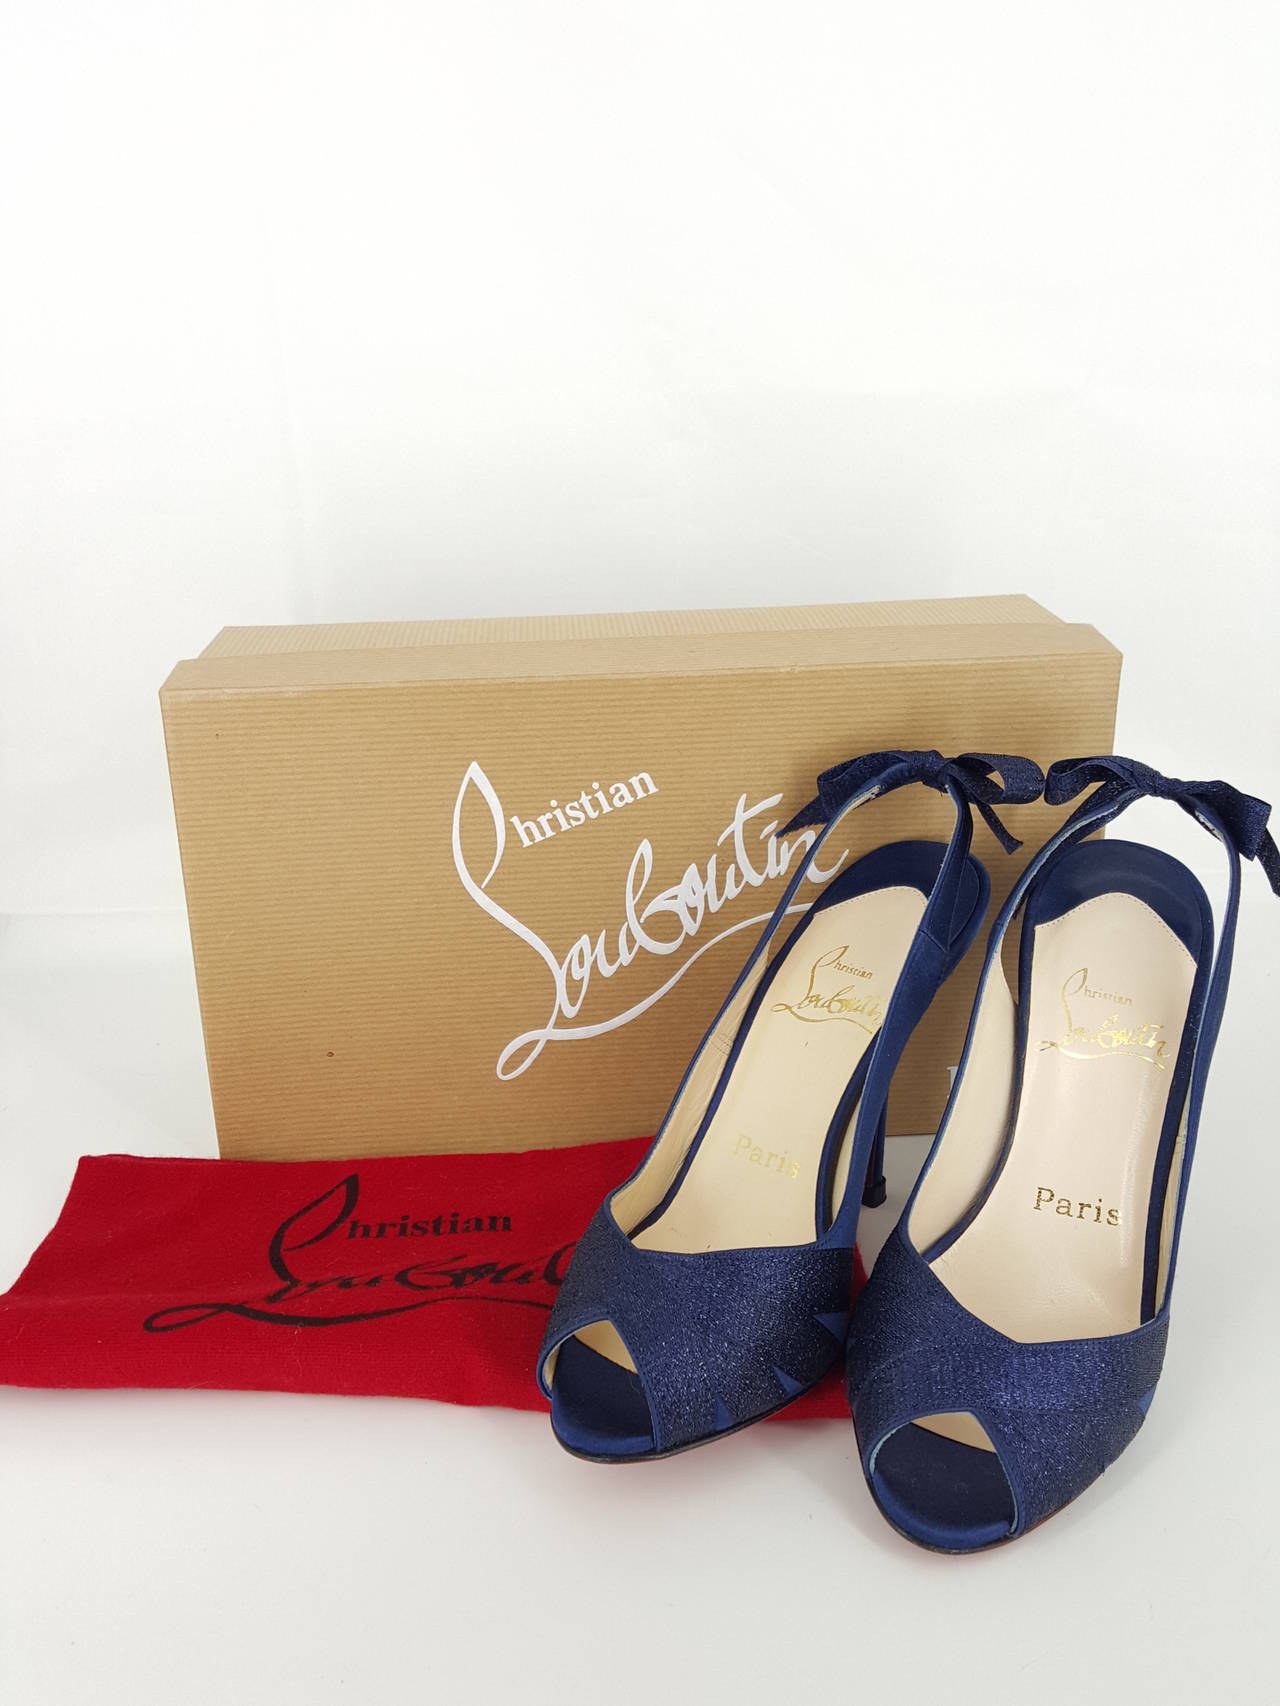 Christian Louboutin Navy Blue Sparkle Sling Back Heels With Bow.  Size 36 5